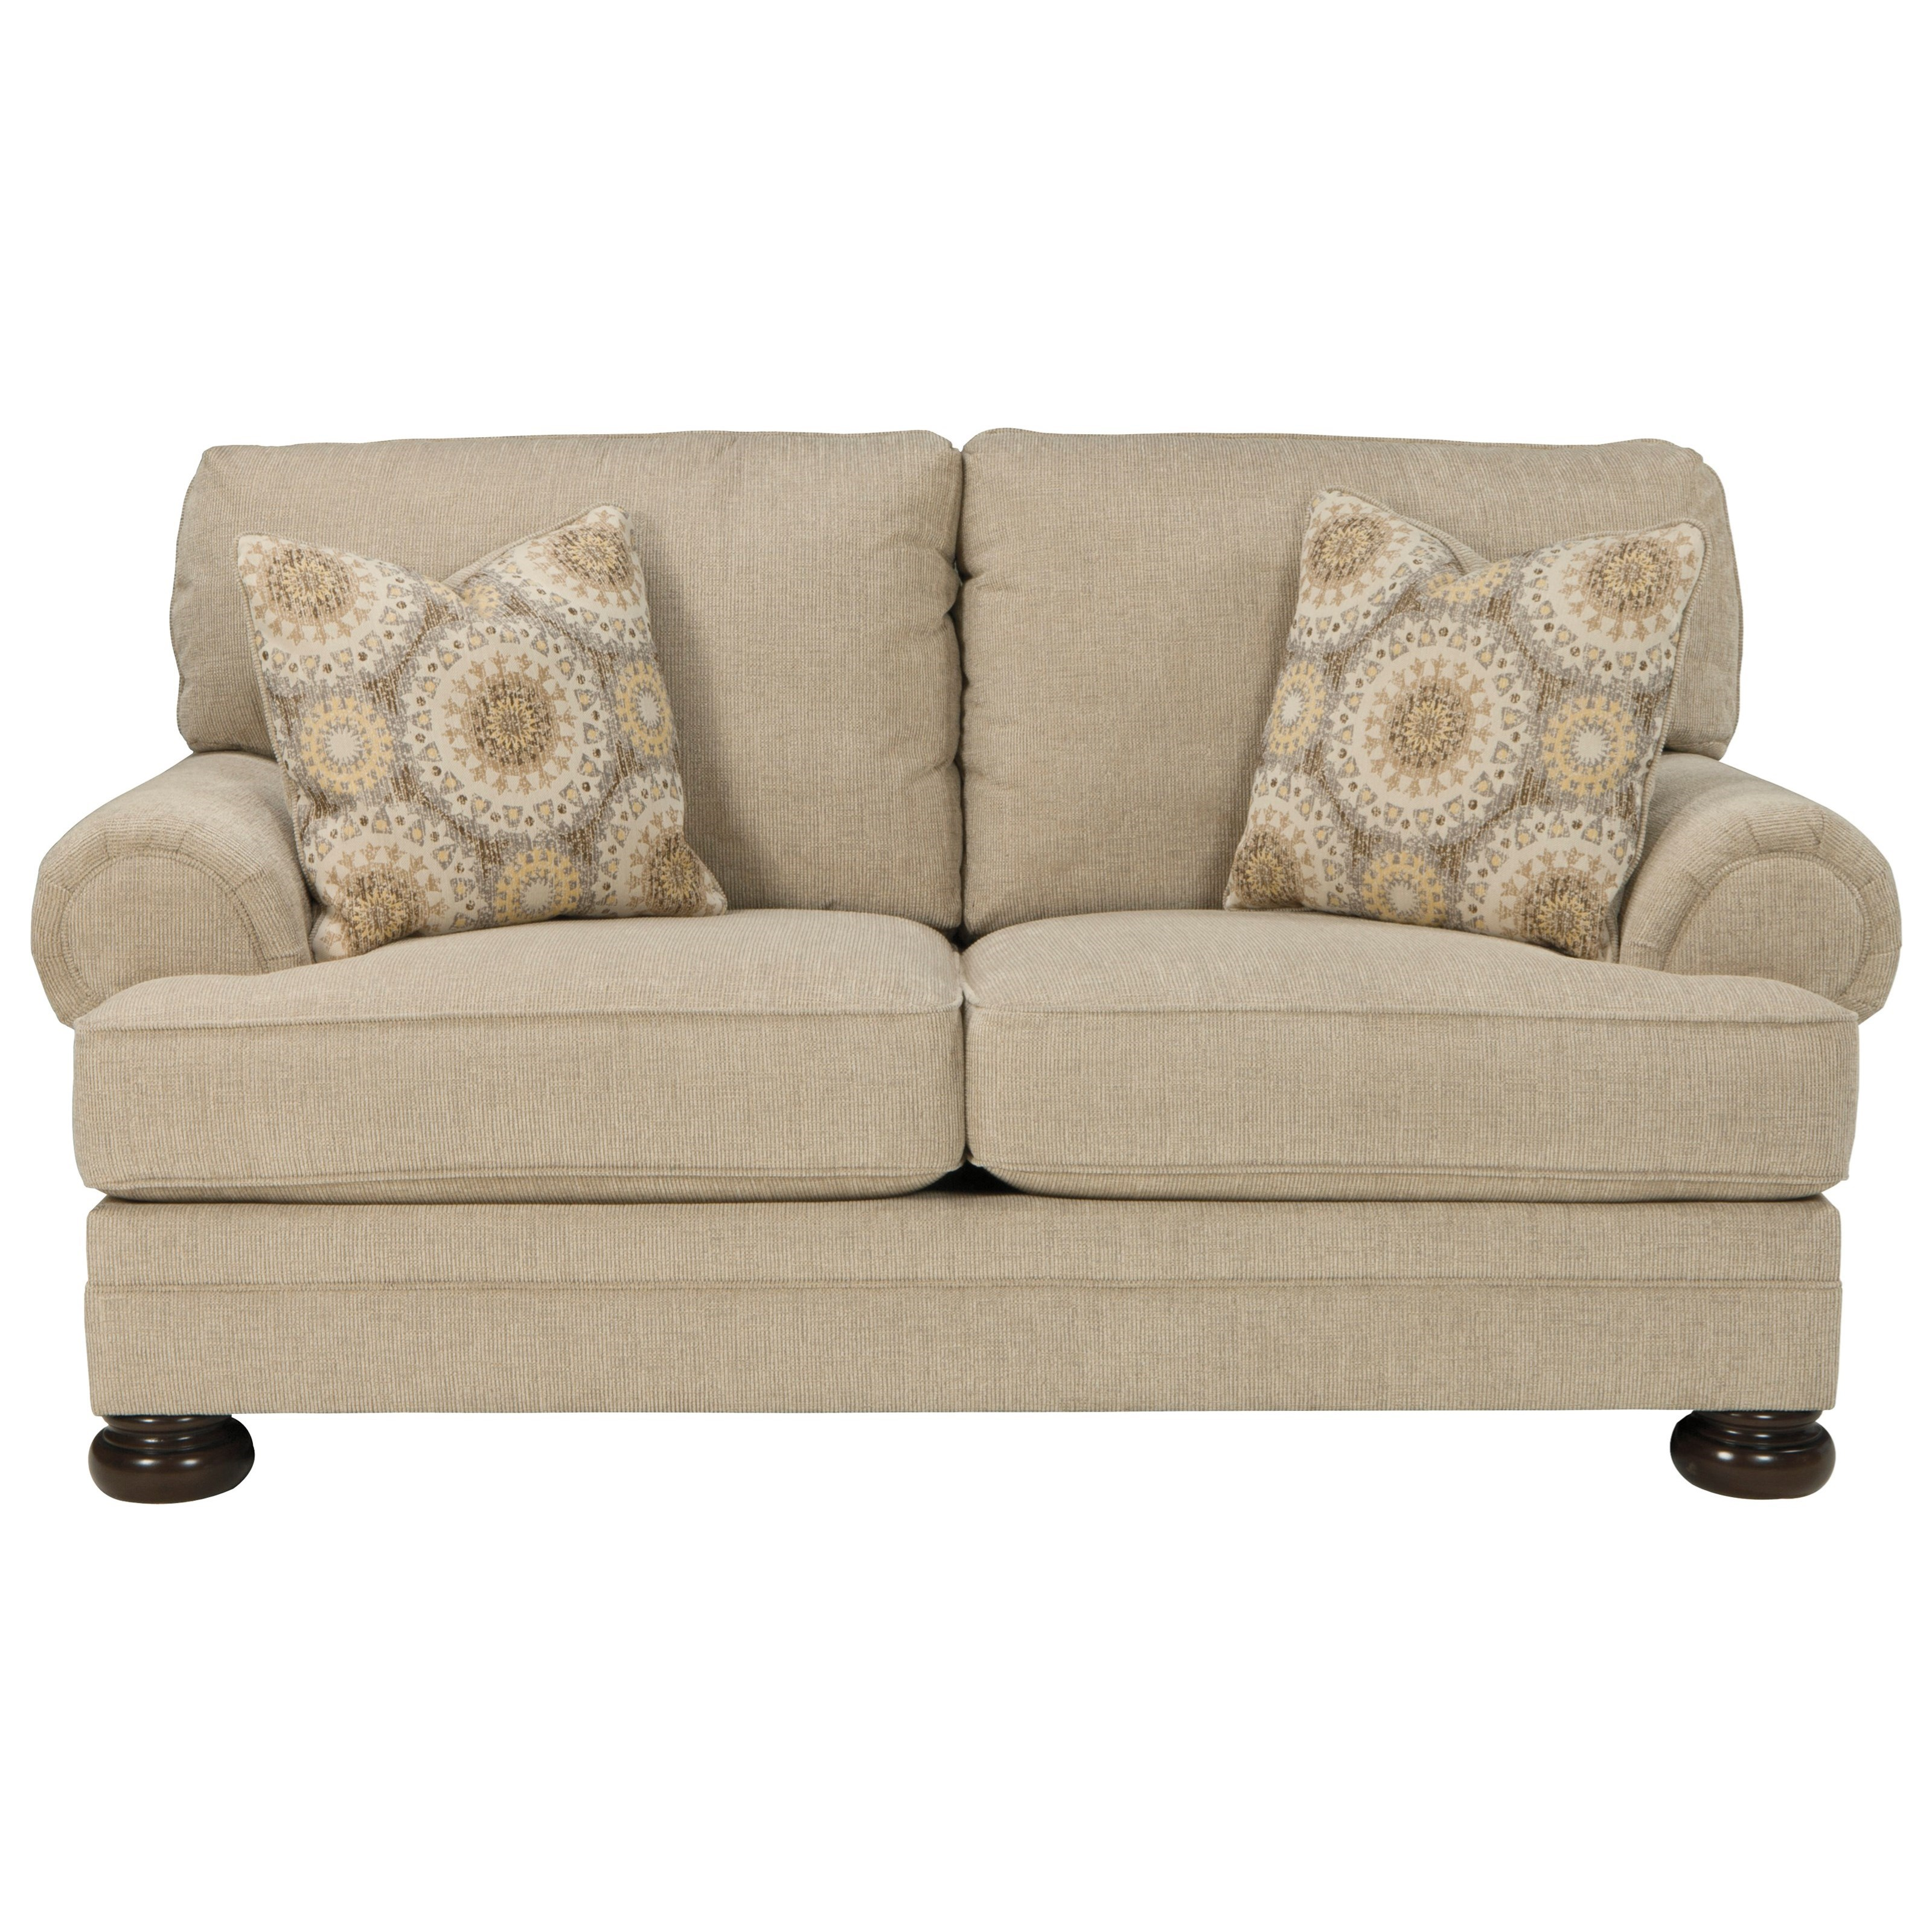 Benchcraft Quarry Hill Loveseat - Item Number: 3870135